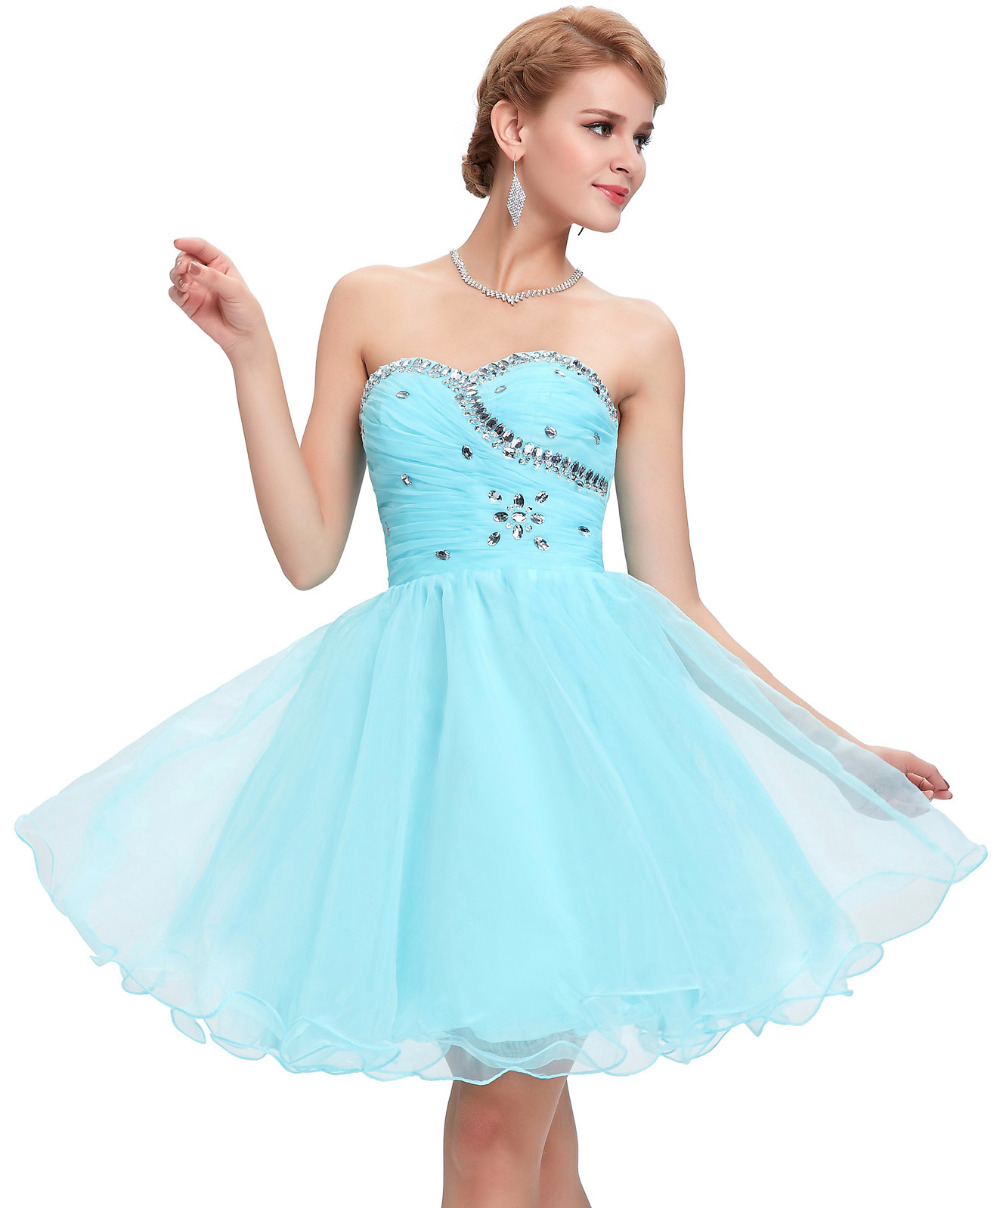 Dorable Short Tutu Wedding Dresses Gallery - Colorful Wedding Dress ...